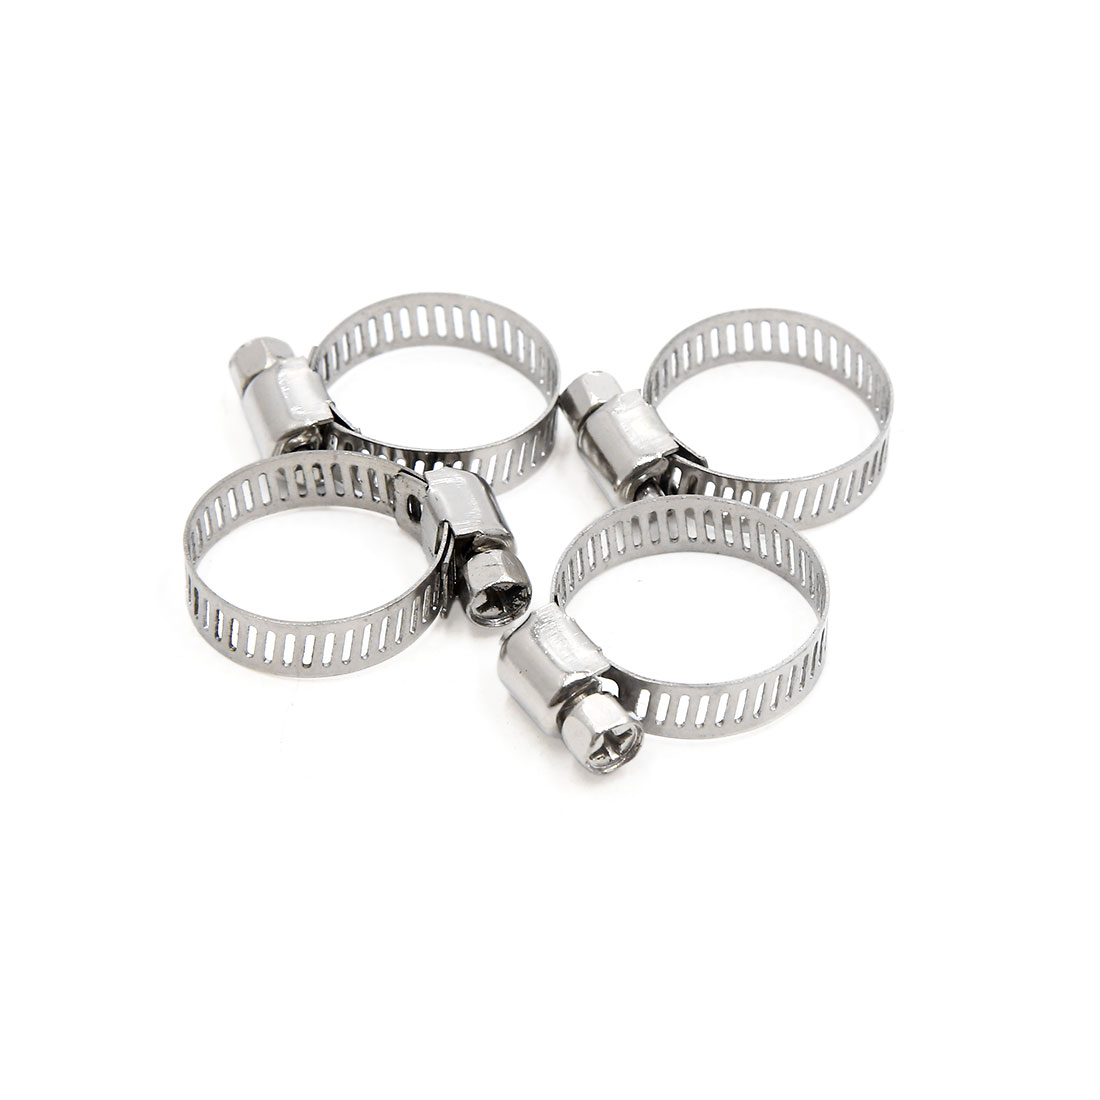 4pcs Silver Tone Stainless Steel Adjustable Worm Gear Hose Clamp 16-25mm for Car